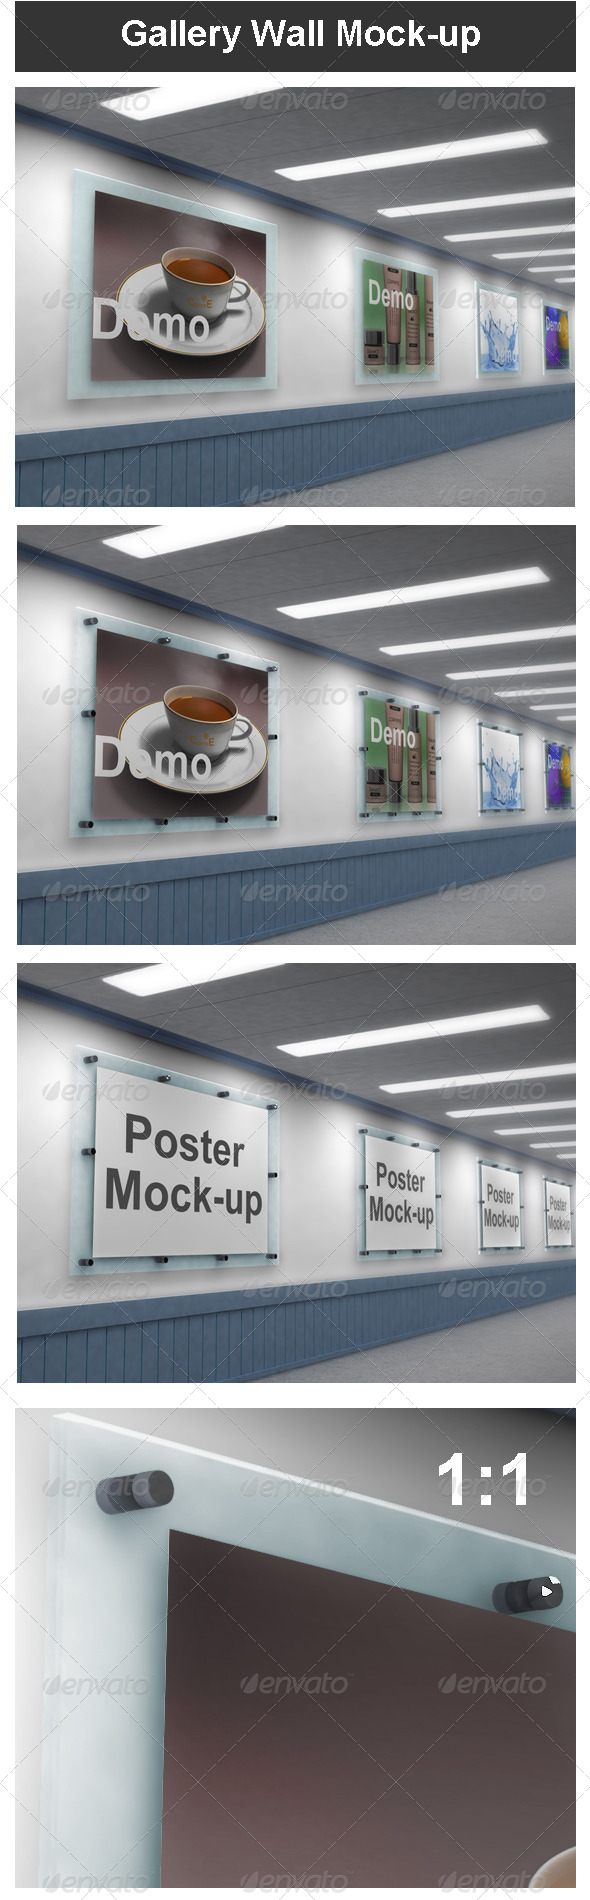 Gallery Wall Mock-up - Miscellaneous Displays